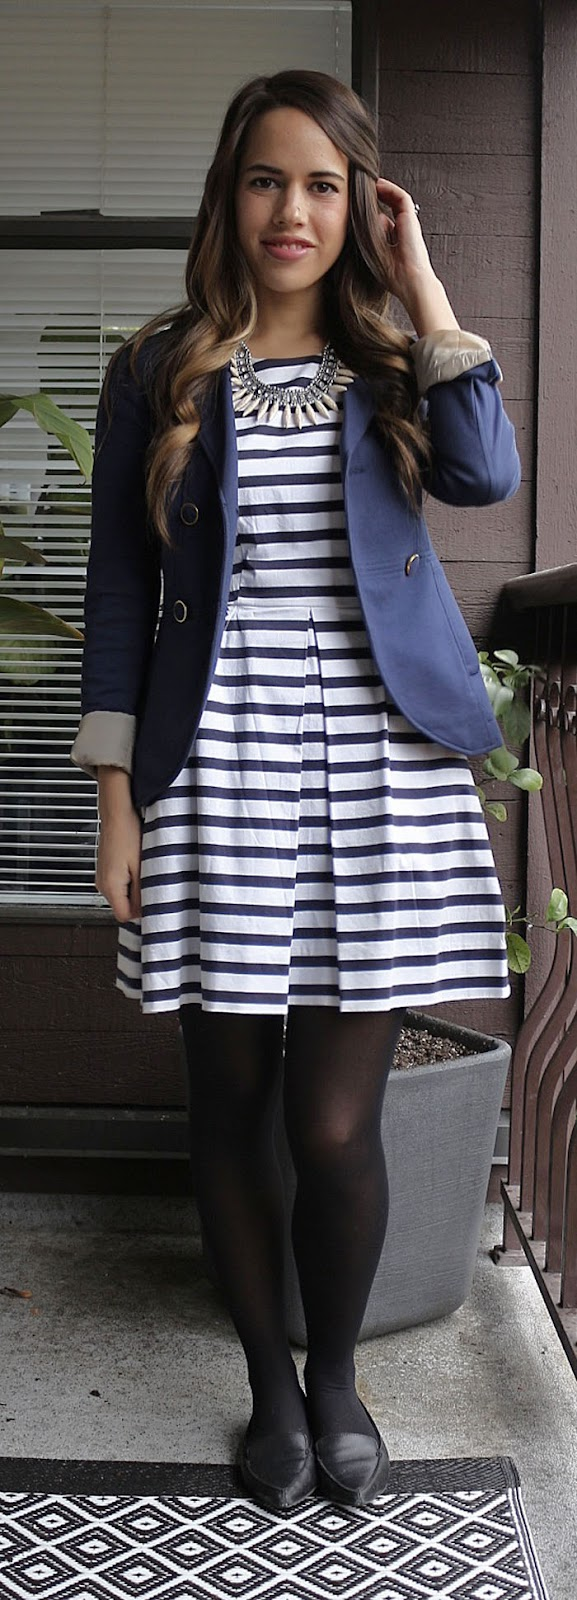 Jules in Flats - Gap Striped Fit and Flare Dress, H&M Blazer